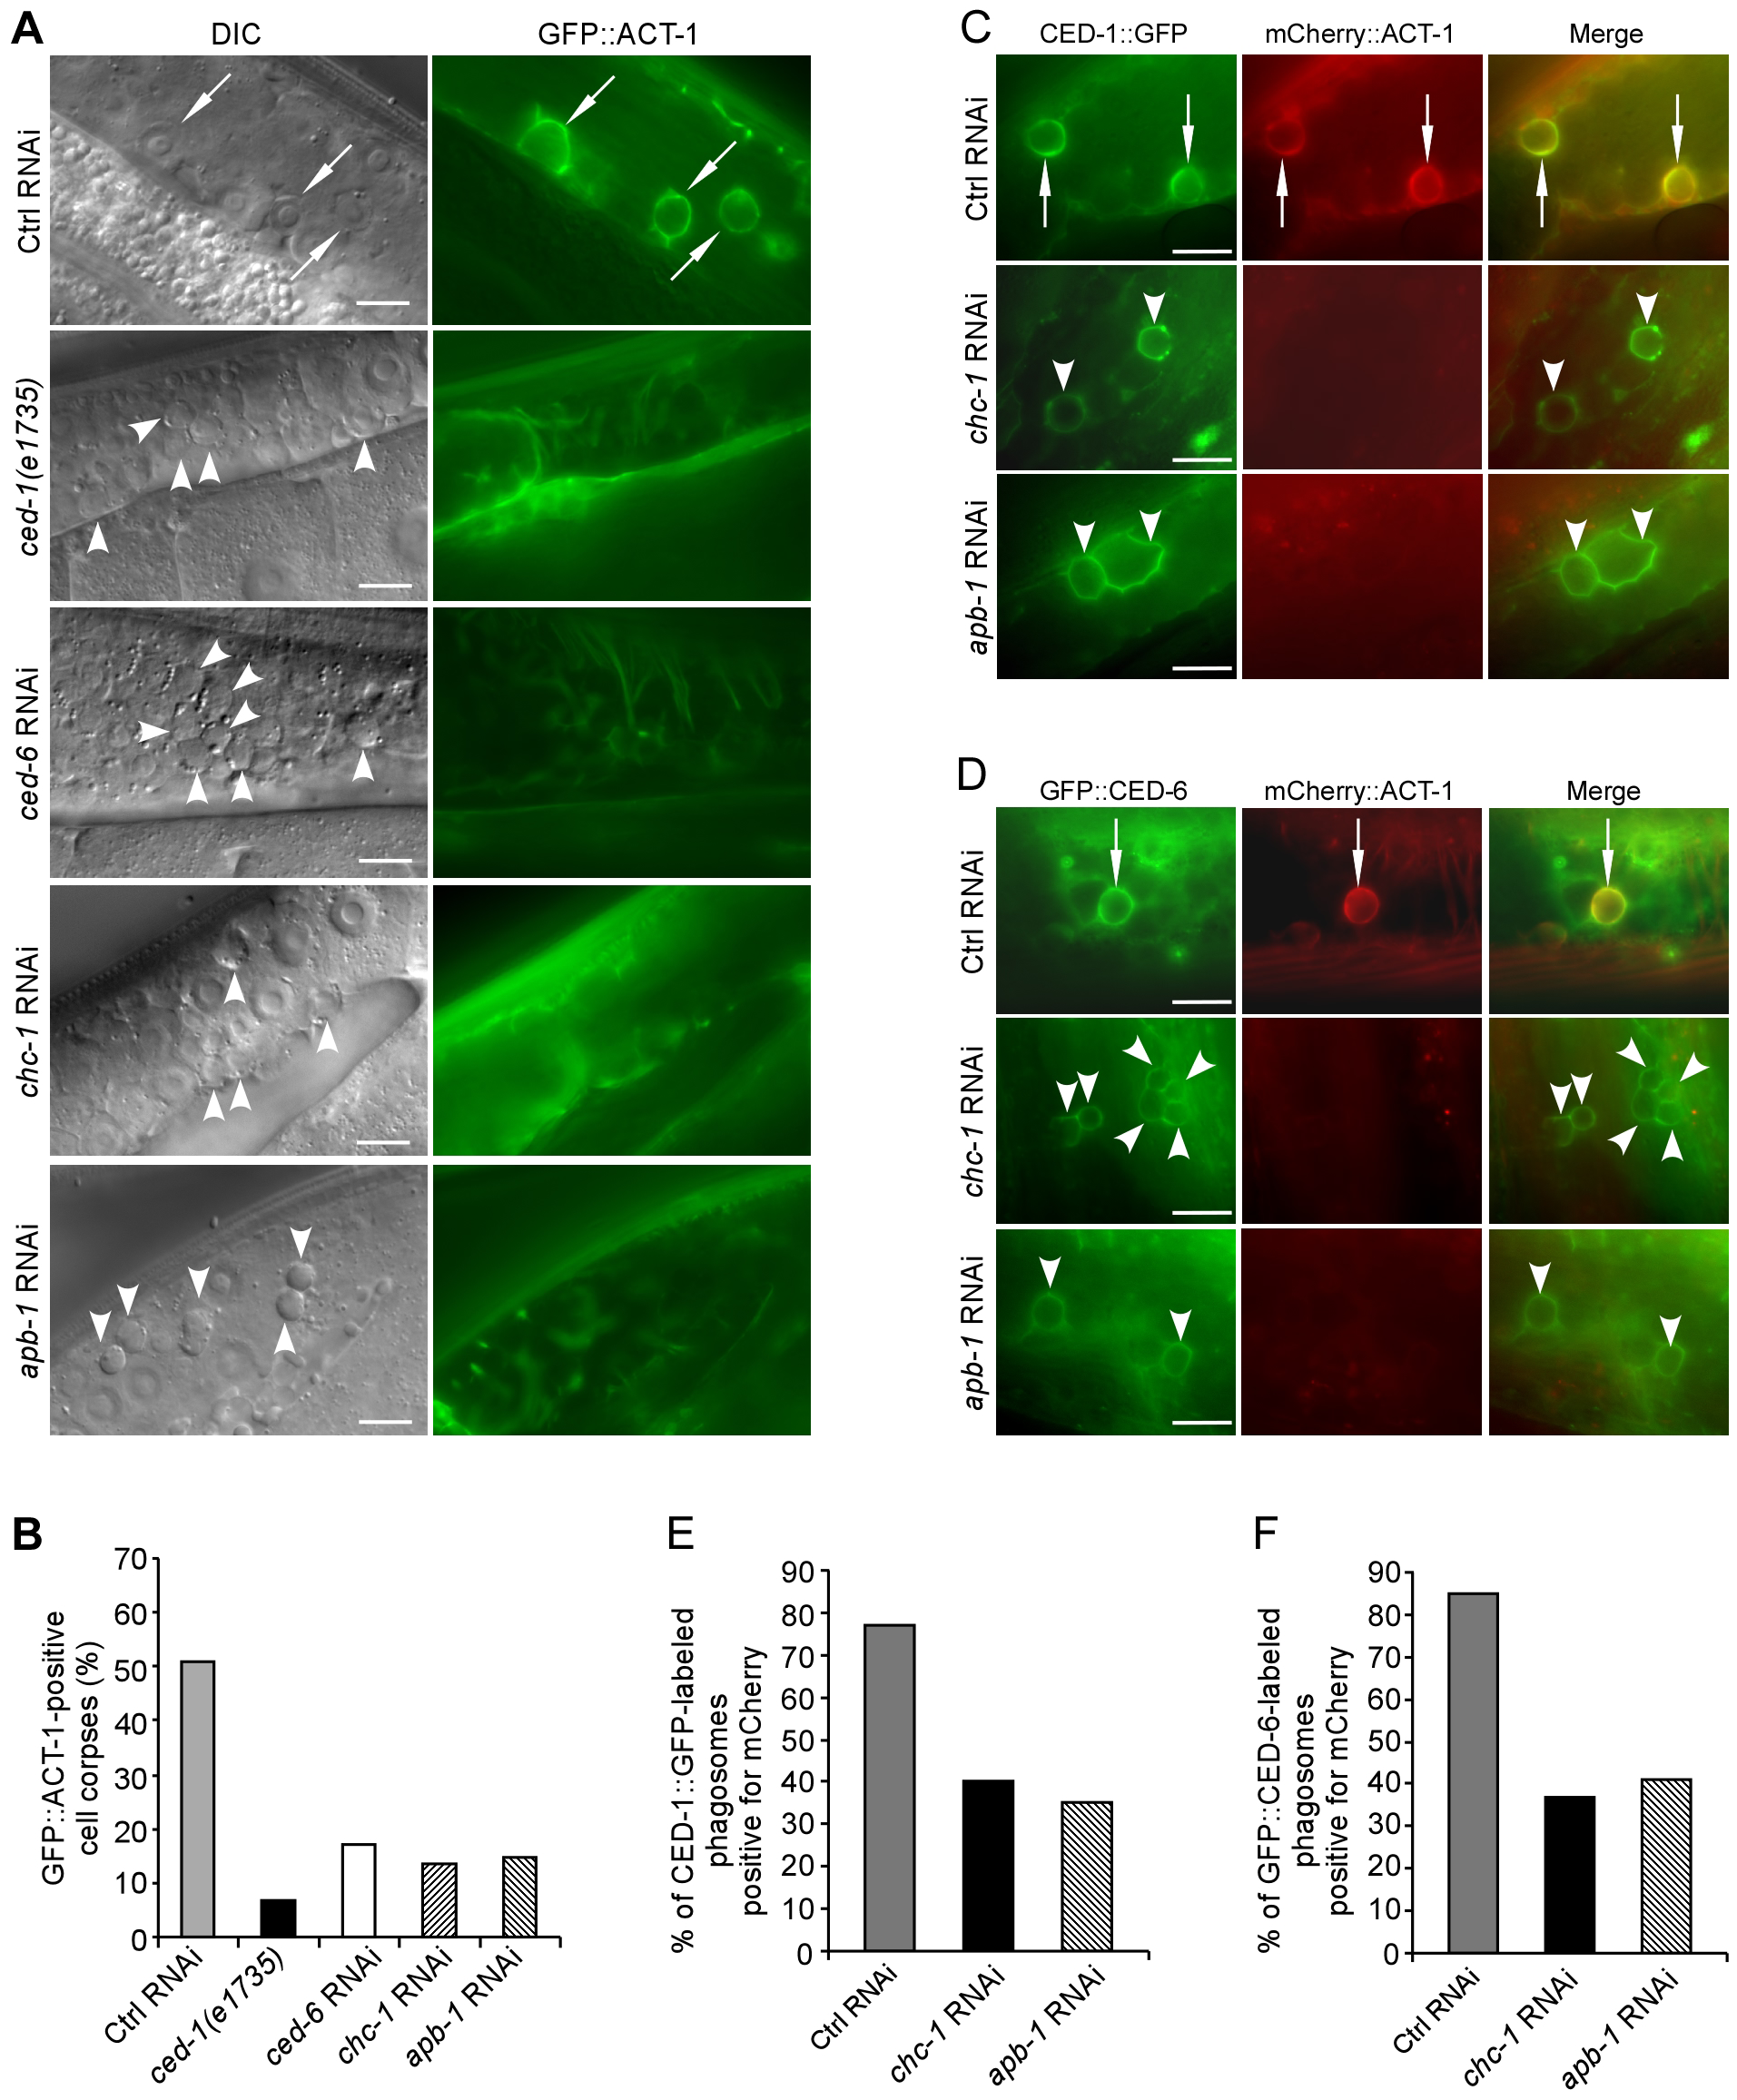 CHC-1 and AP2 are required for the rearrangement of the actin cytoskeleton necessary for cell corpse engulfment.